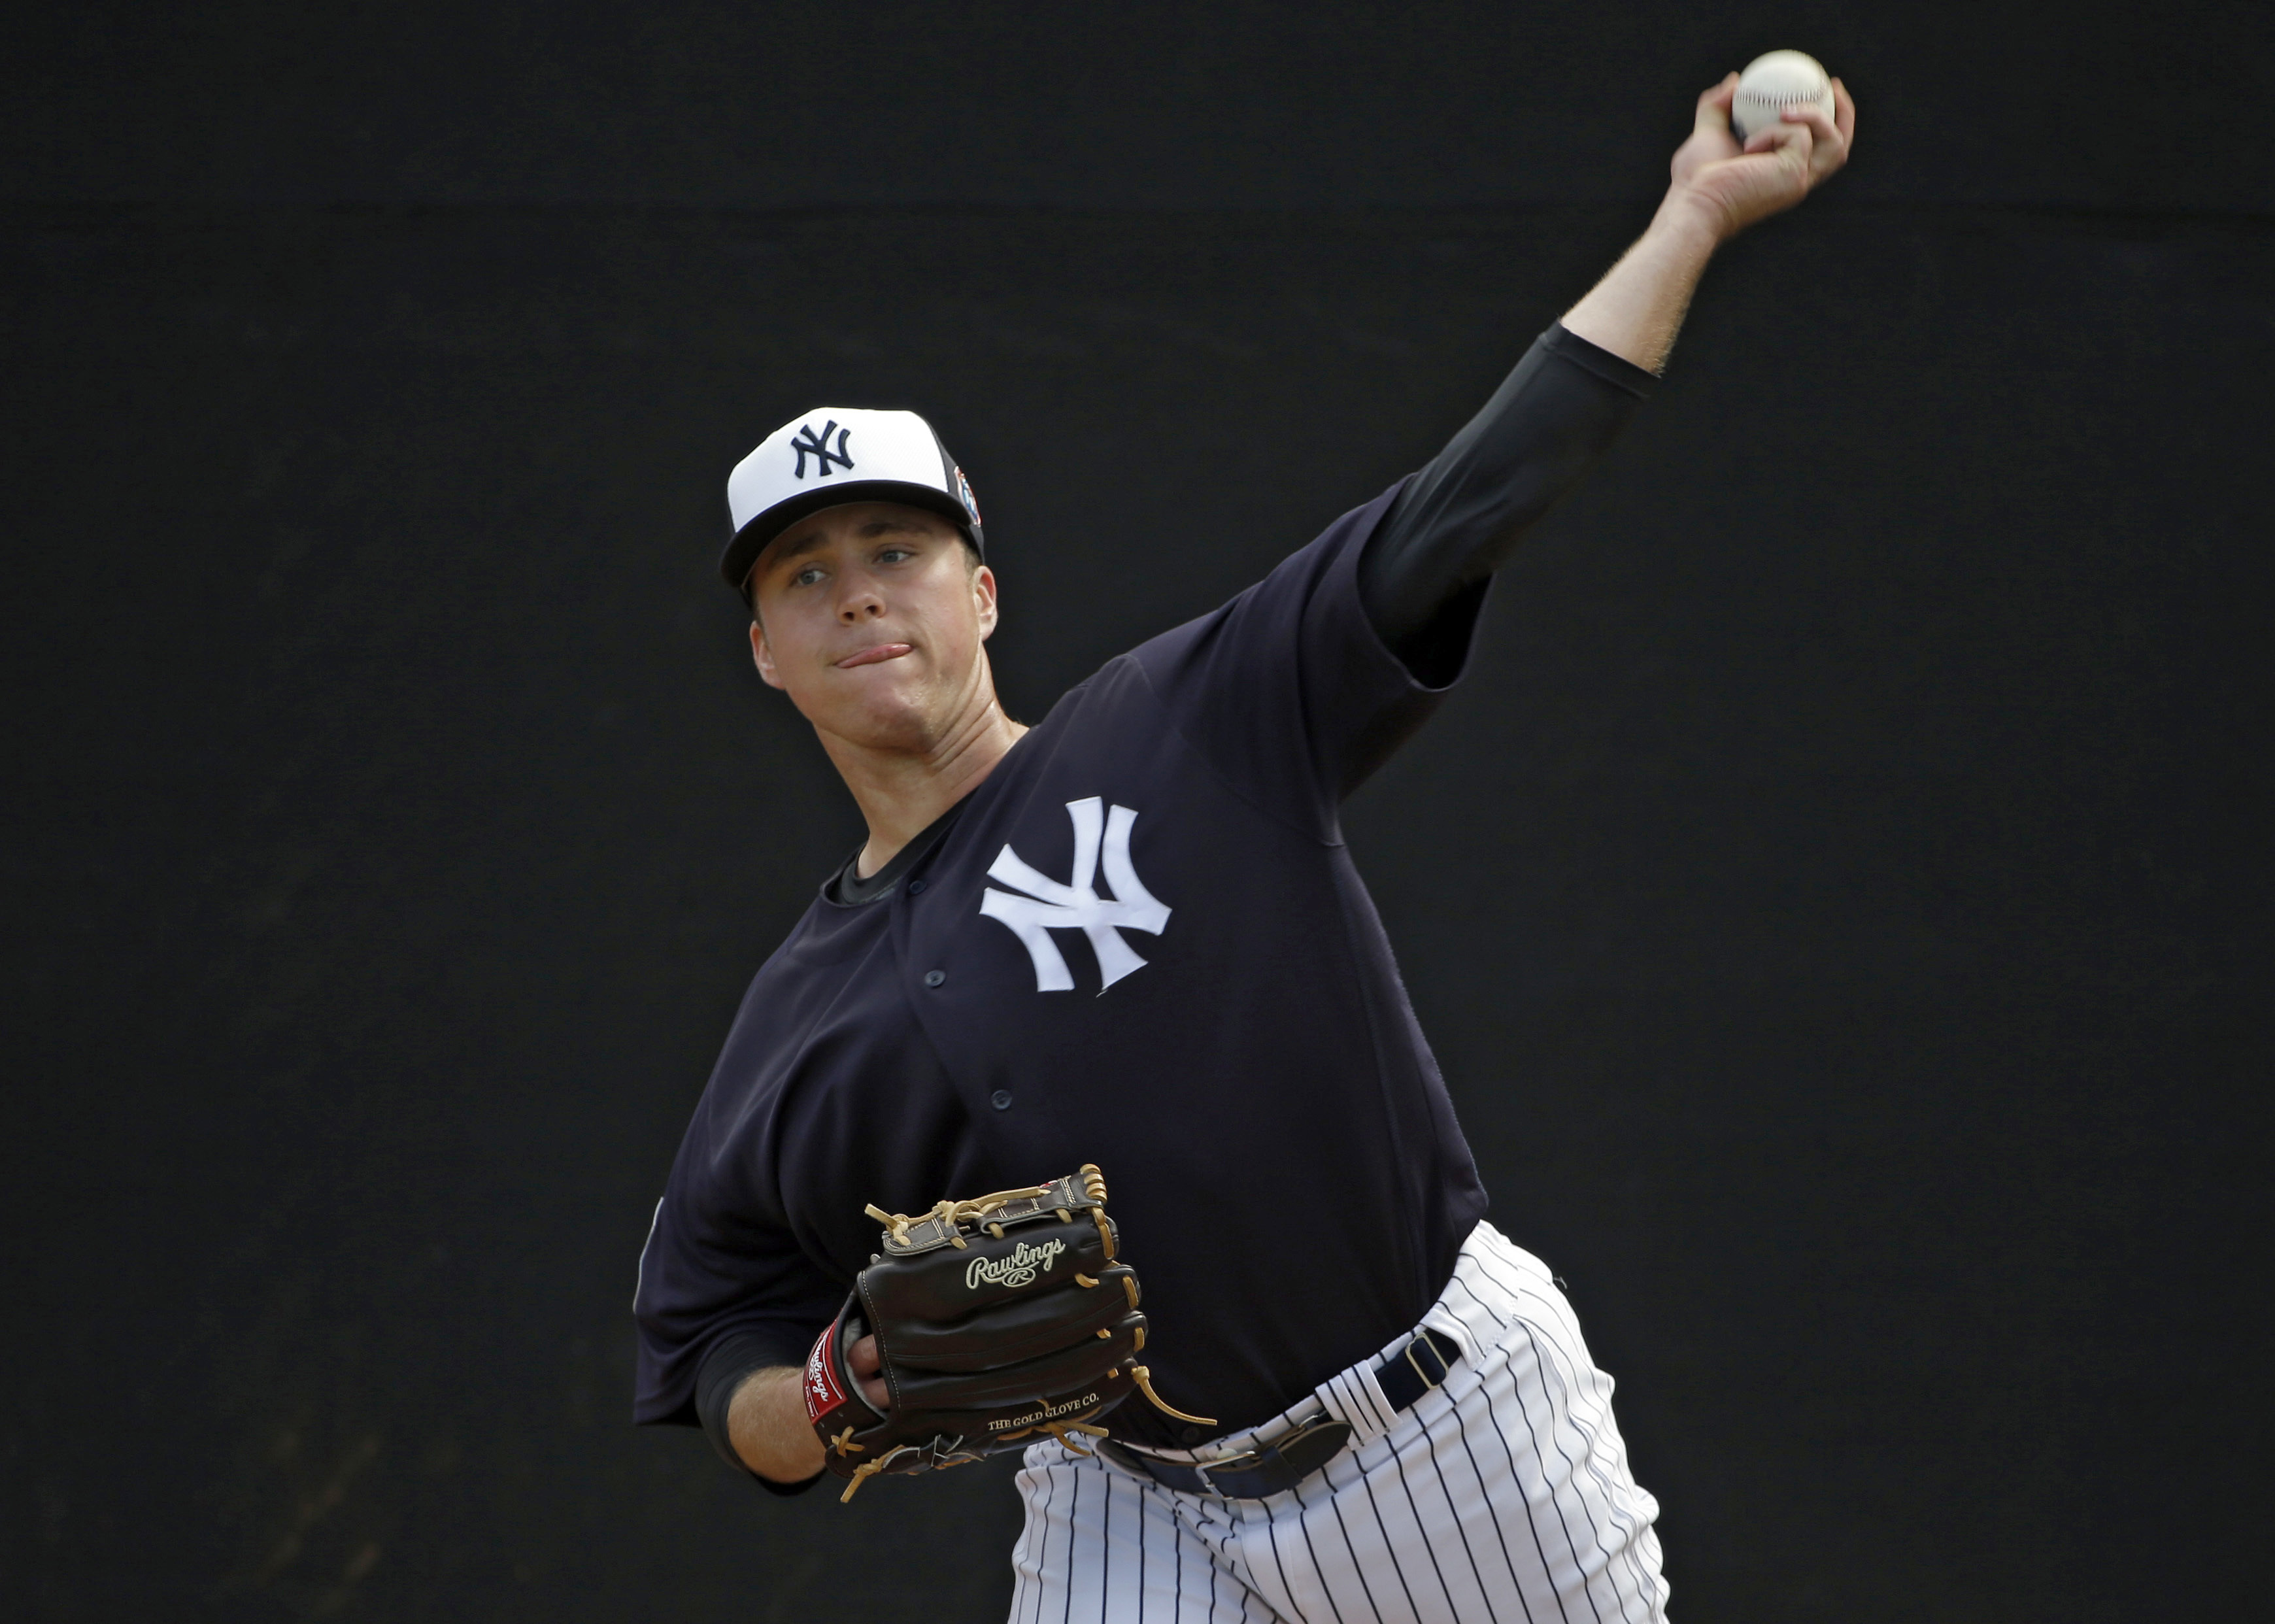 FILE - In this March 5, 2016 file photo, New York Yankees relief pitcher Jacob Lindgren throws in the bullpen before a spring training baseball game against the Boston Red Sox in Tampa, Fla. Yankees left-hander Jacob Lindgren will have Tommy John surgery